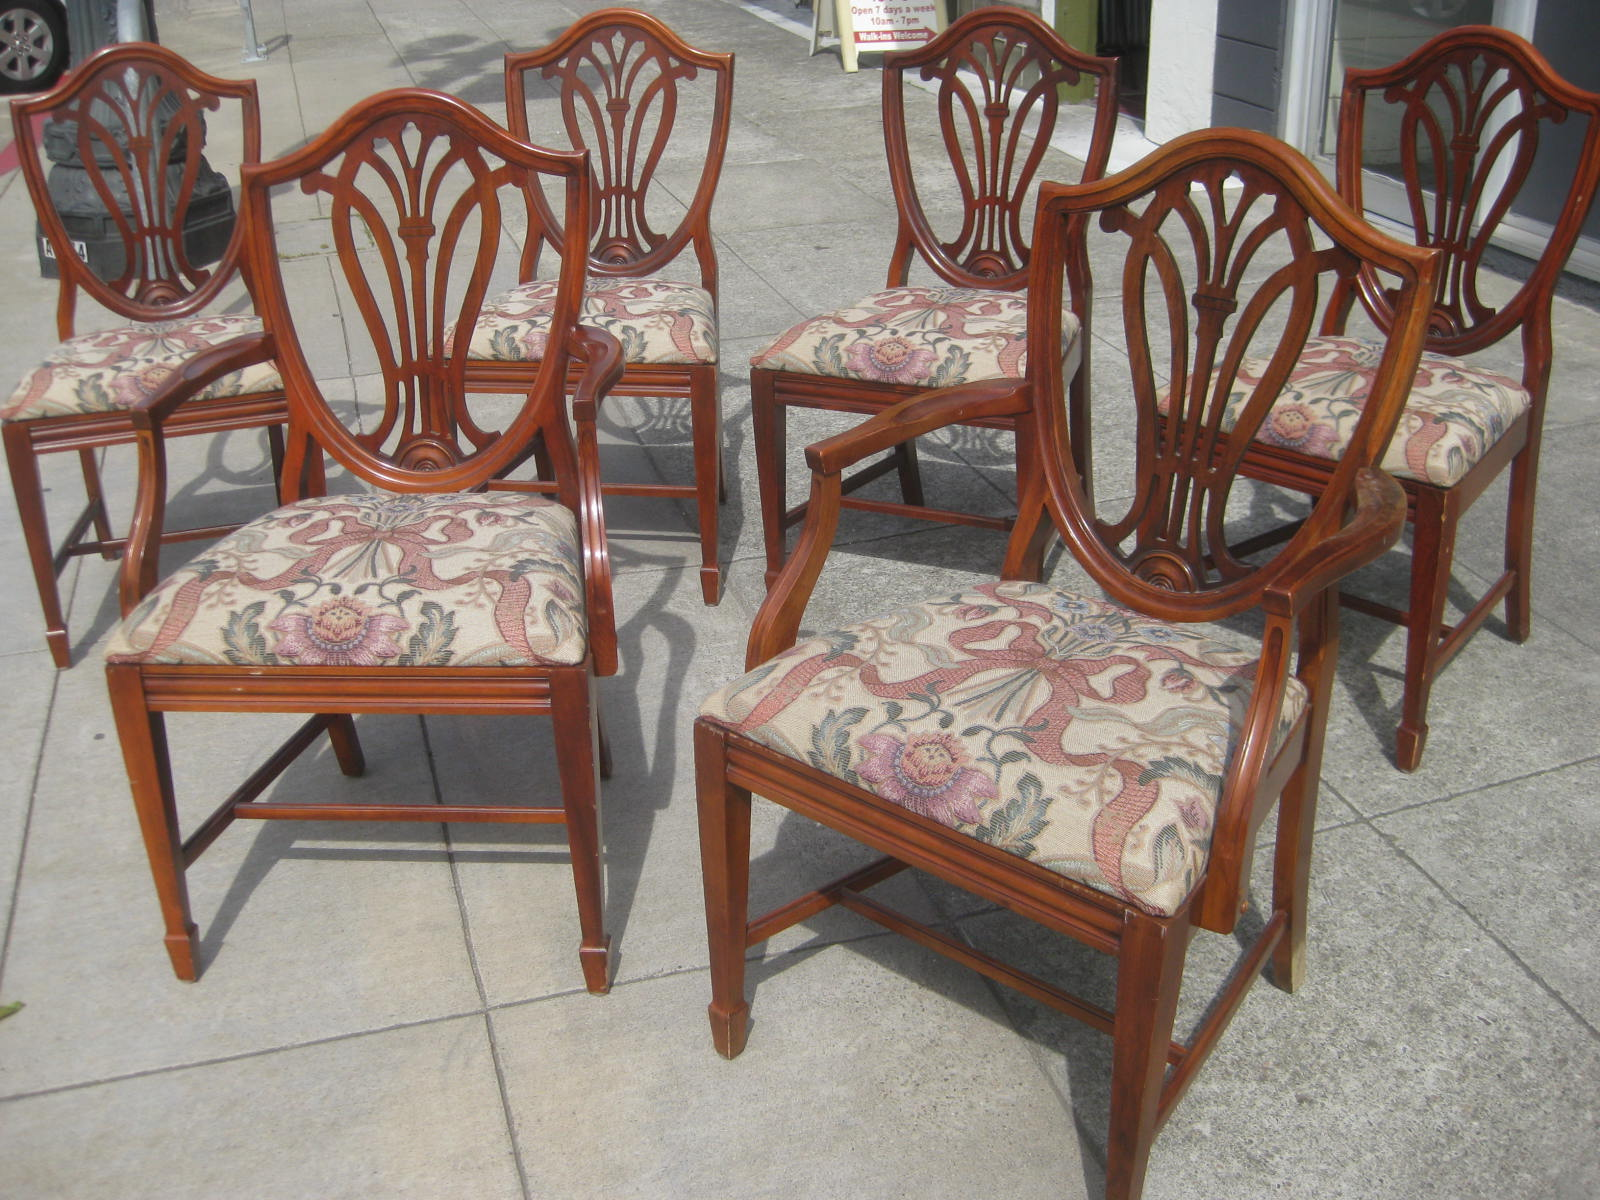 duncan phyfe chairs seating office uhuru furniture and collectibles sold set of six